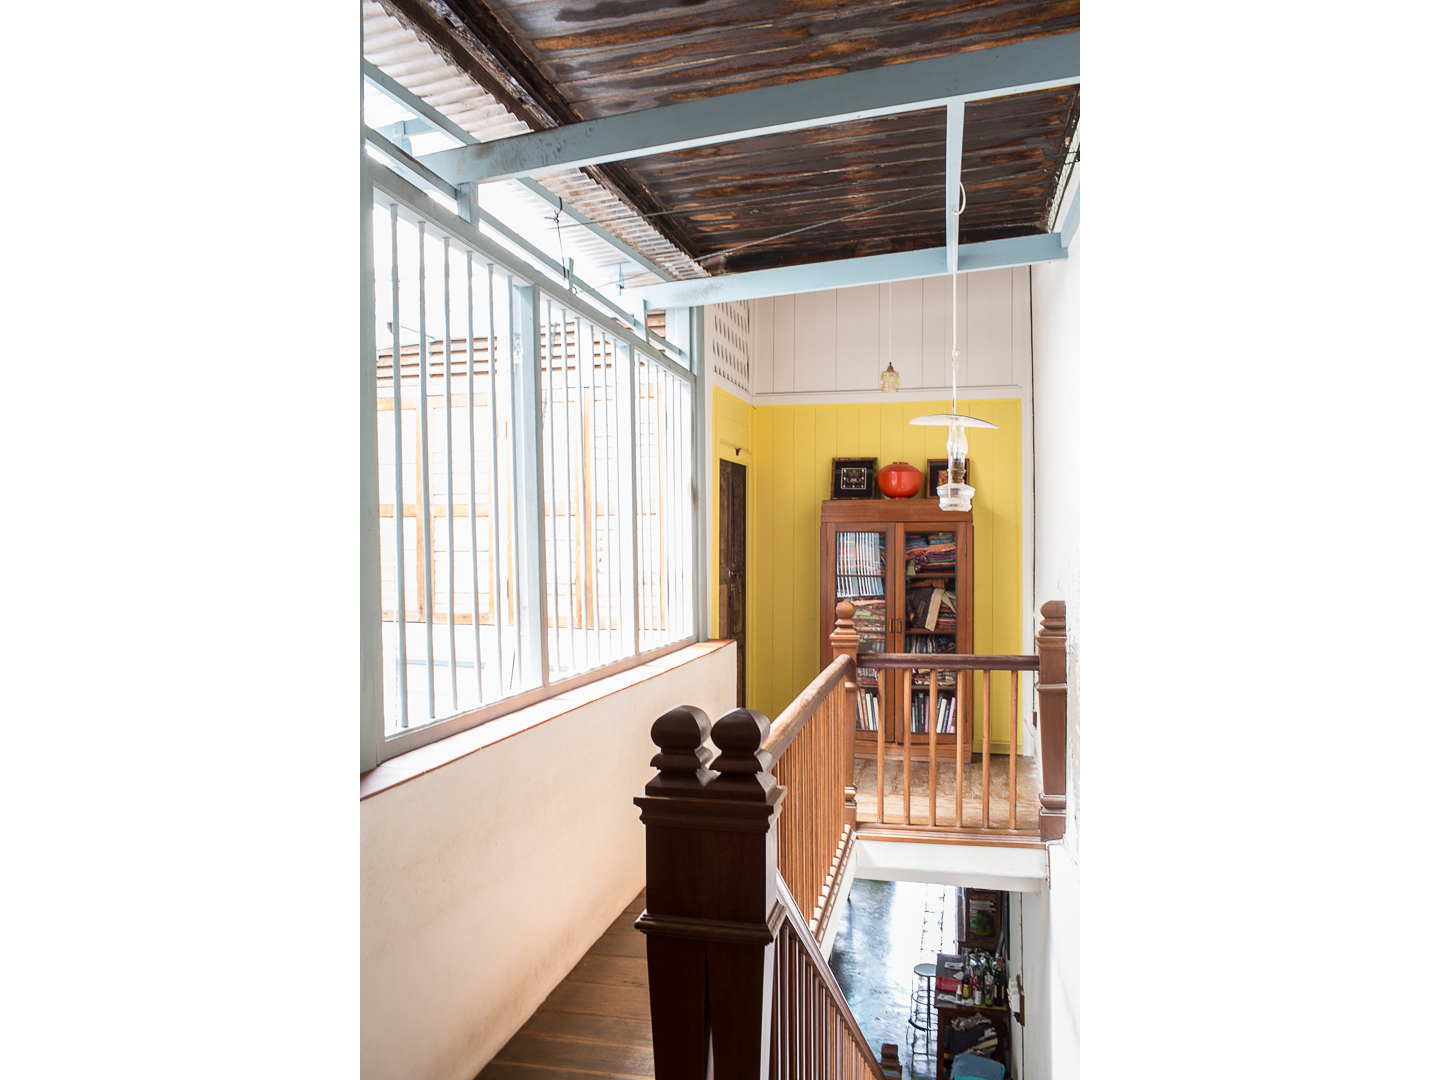 penang-heritage-house-for-sale-upper-floor-MBR-entrance